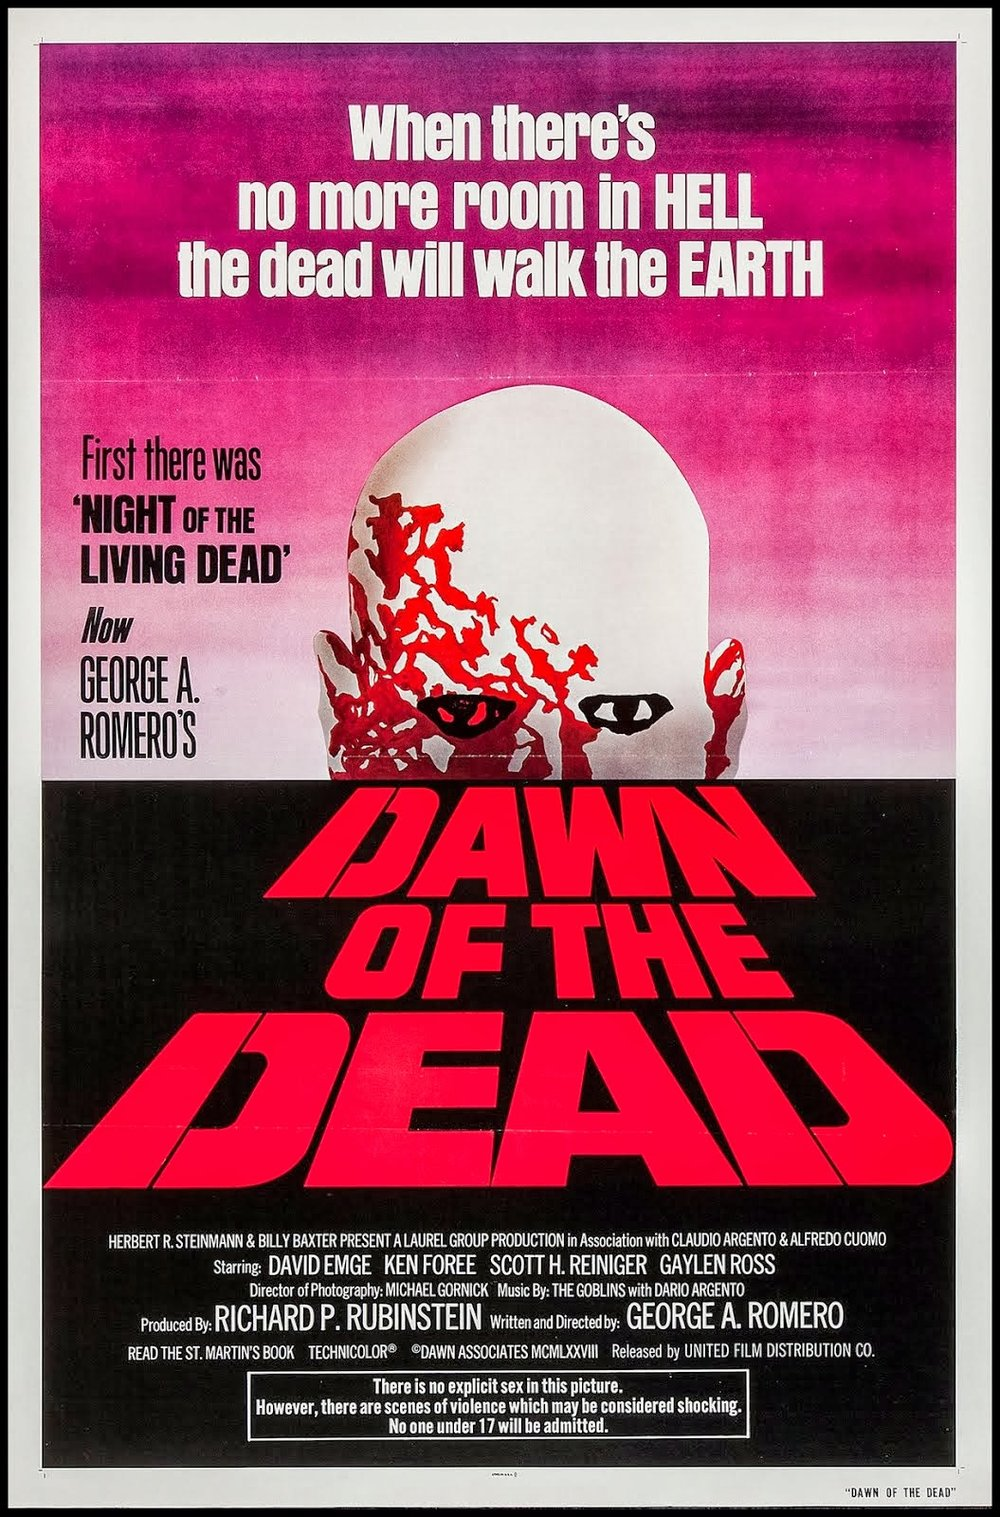 14 - Dawn of the Deadhttps://rottenpop.com/rottenfilmroll/2013/10/dawn-of-dead-1978-george-romero.html